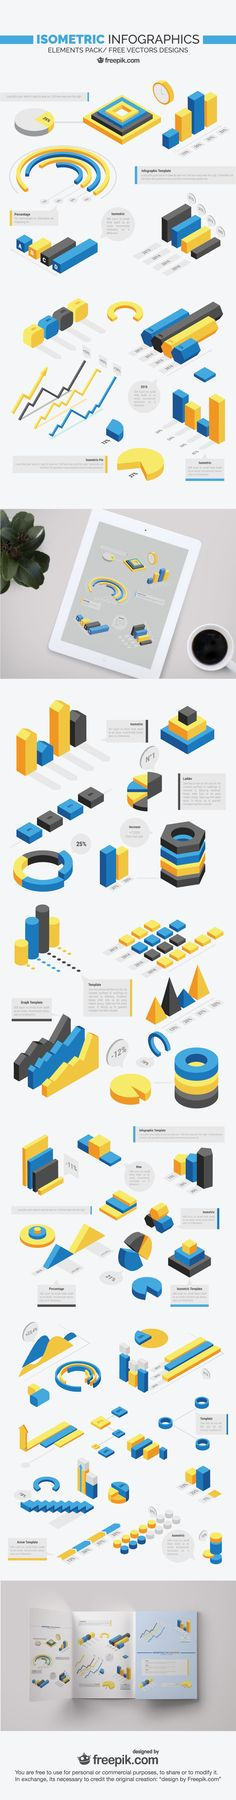 Download an awesome set of free isometric infographics!